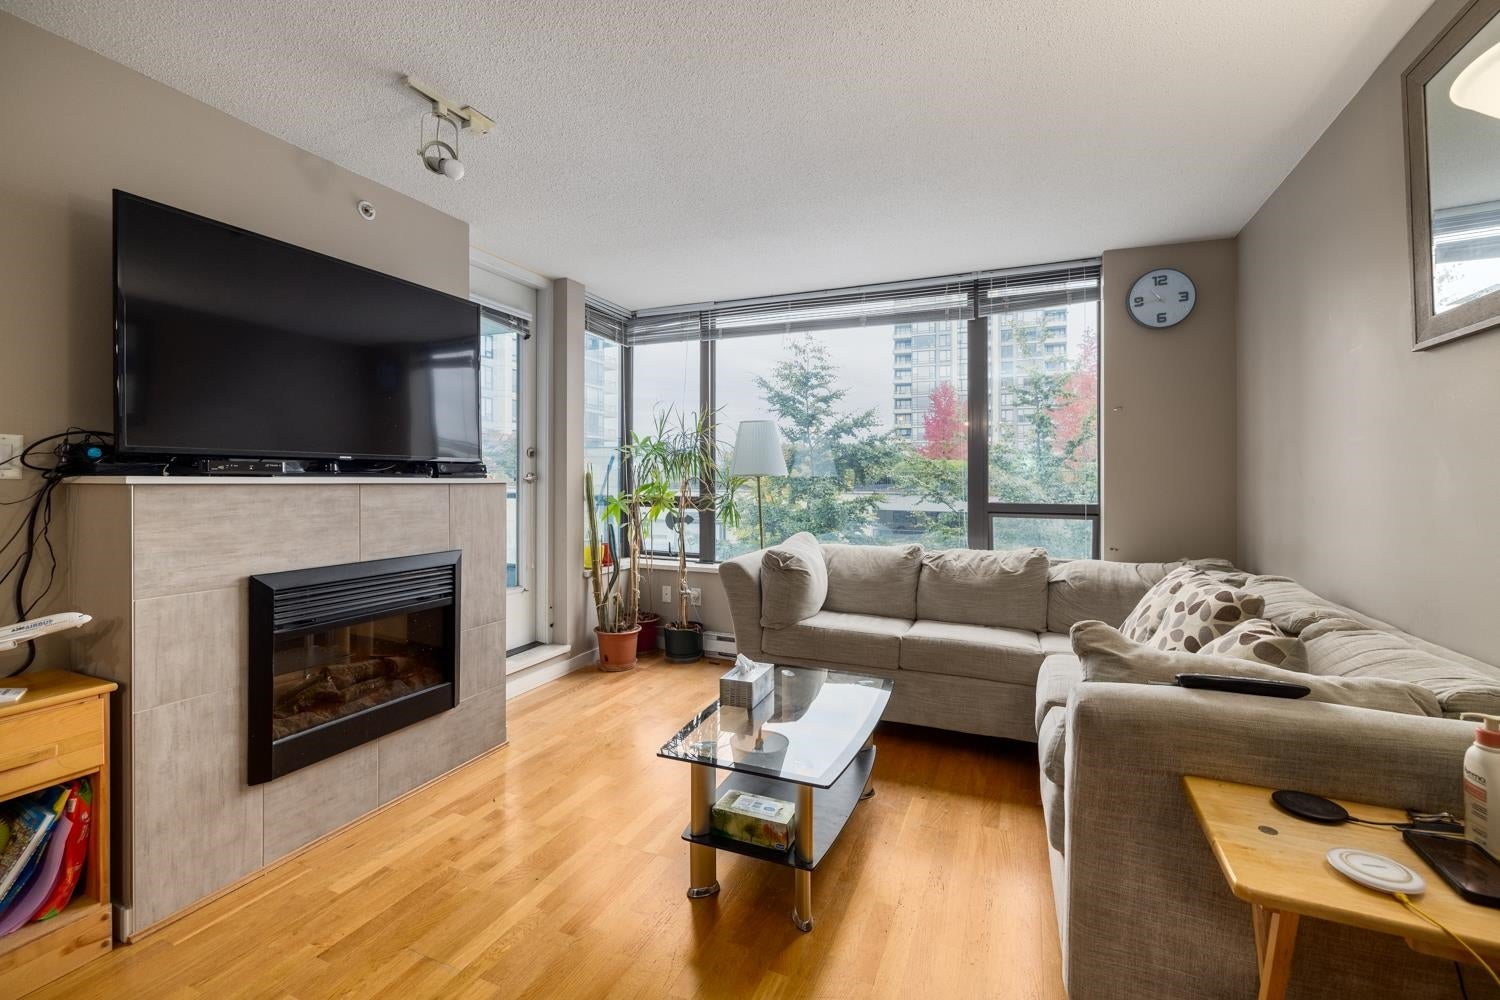 305 4182 DAWSON STREET - Brentwood Park Apartment/Condo for sale, 1 Bedroom (R2626664) - #1